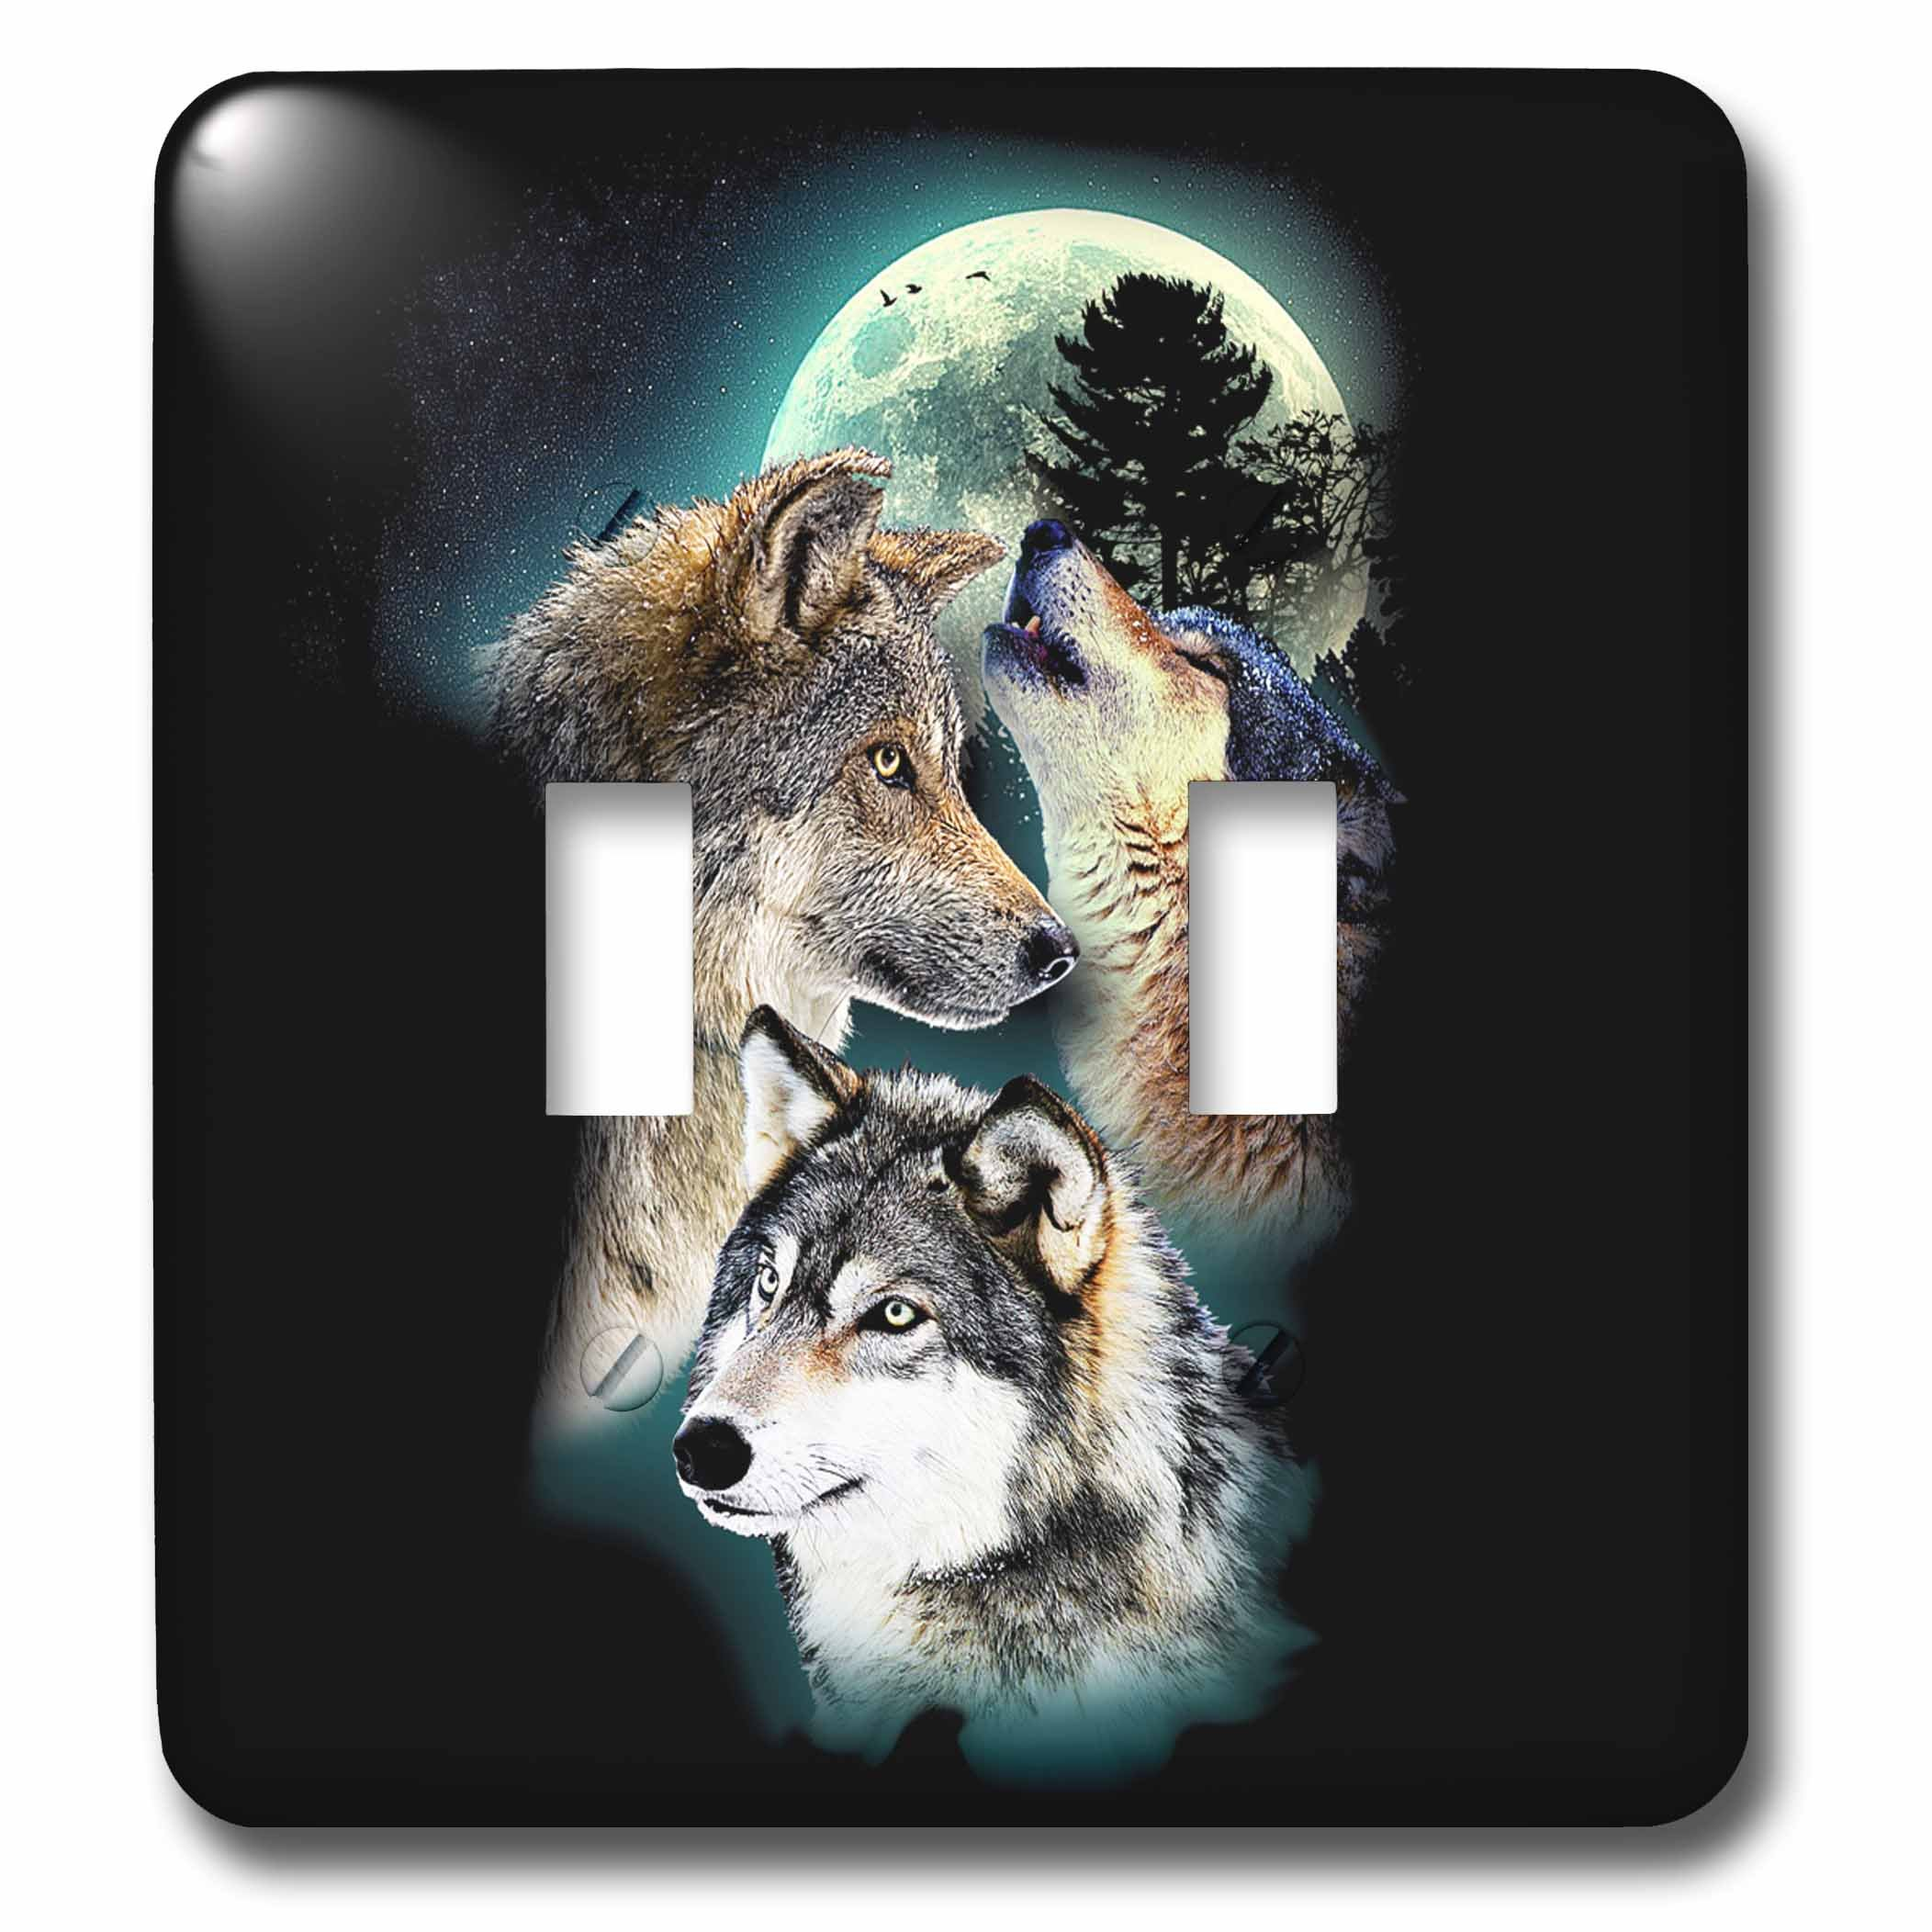 3dRose Sven Herkenrath Animal - Three Beautiful Wolfs in front of the Moon on Black Background - Light Switch Covers - double toggle switch (lsp_281692_2)